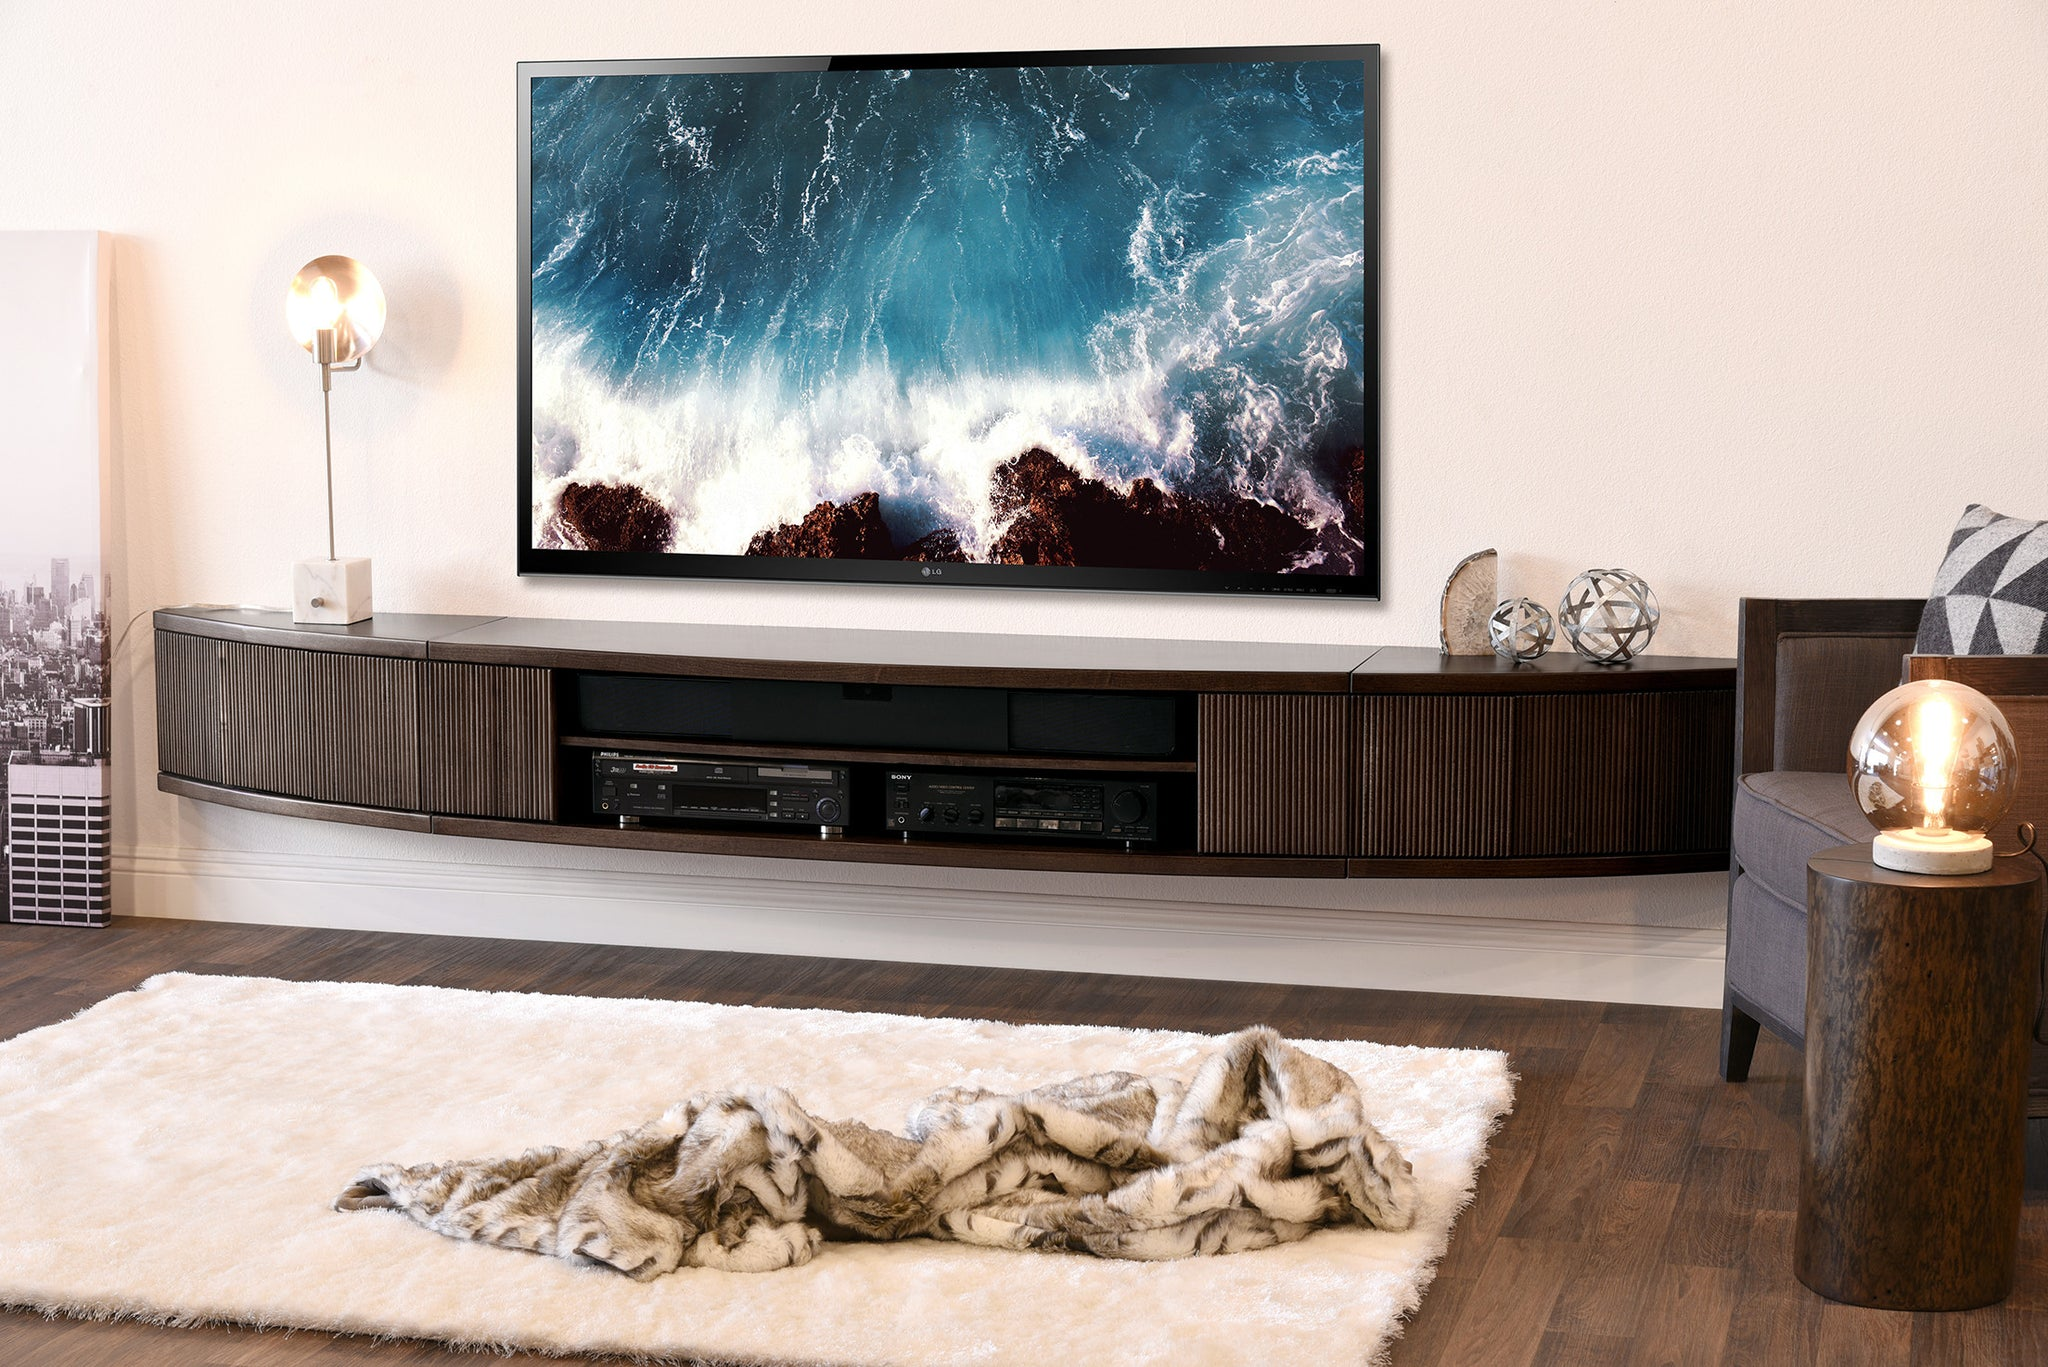 Wall Mount Floating Entertainment Center TV Stand - Arc - Espresso - OB 30% OFF!